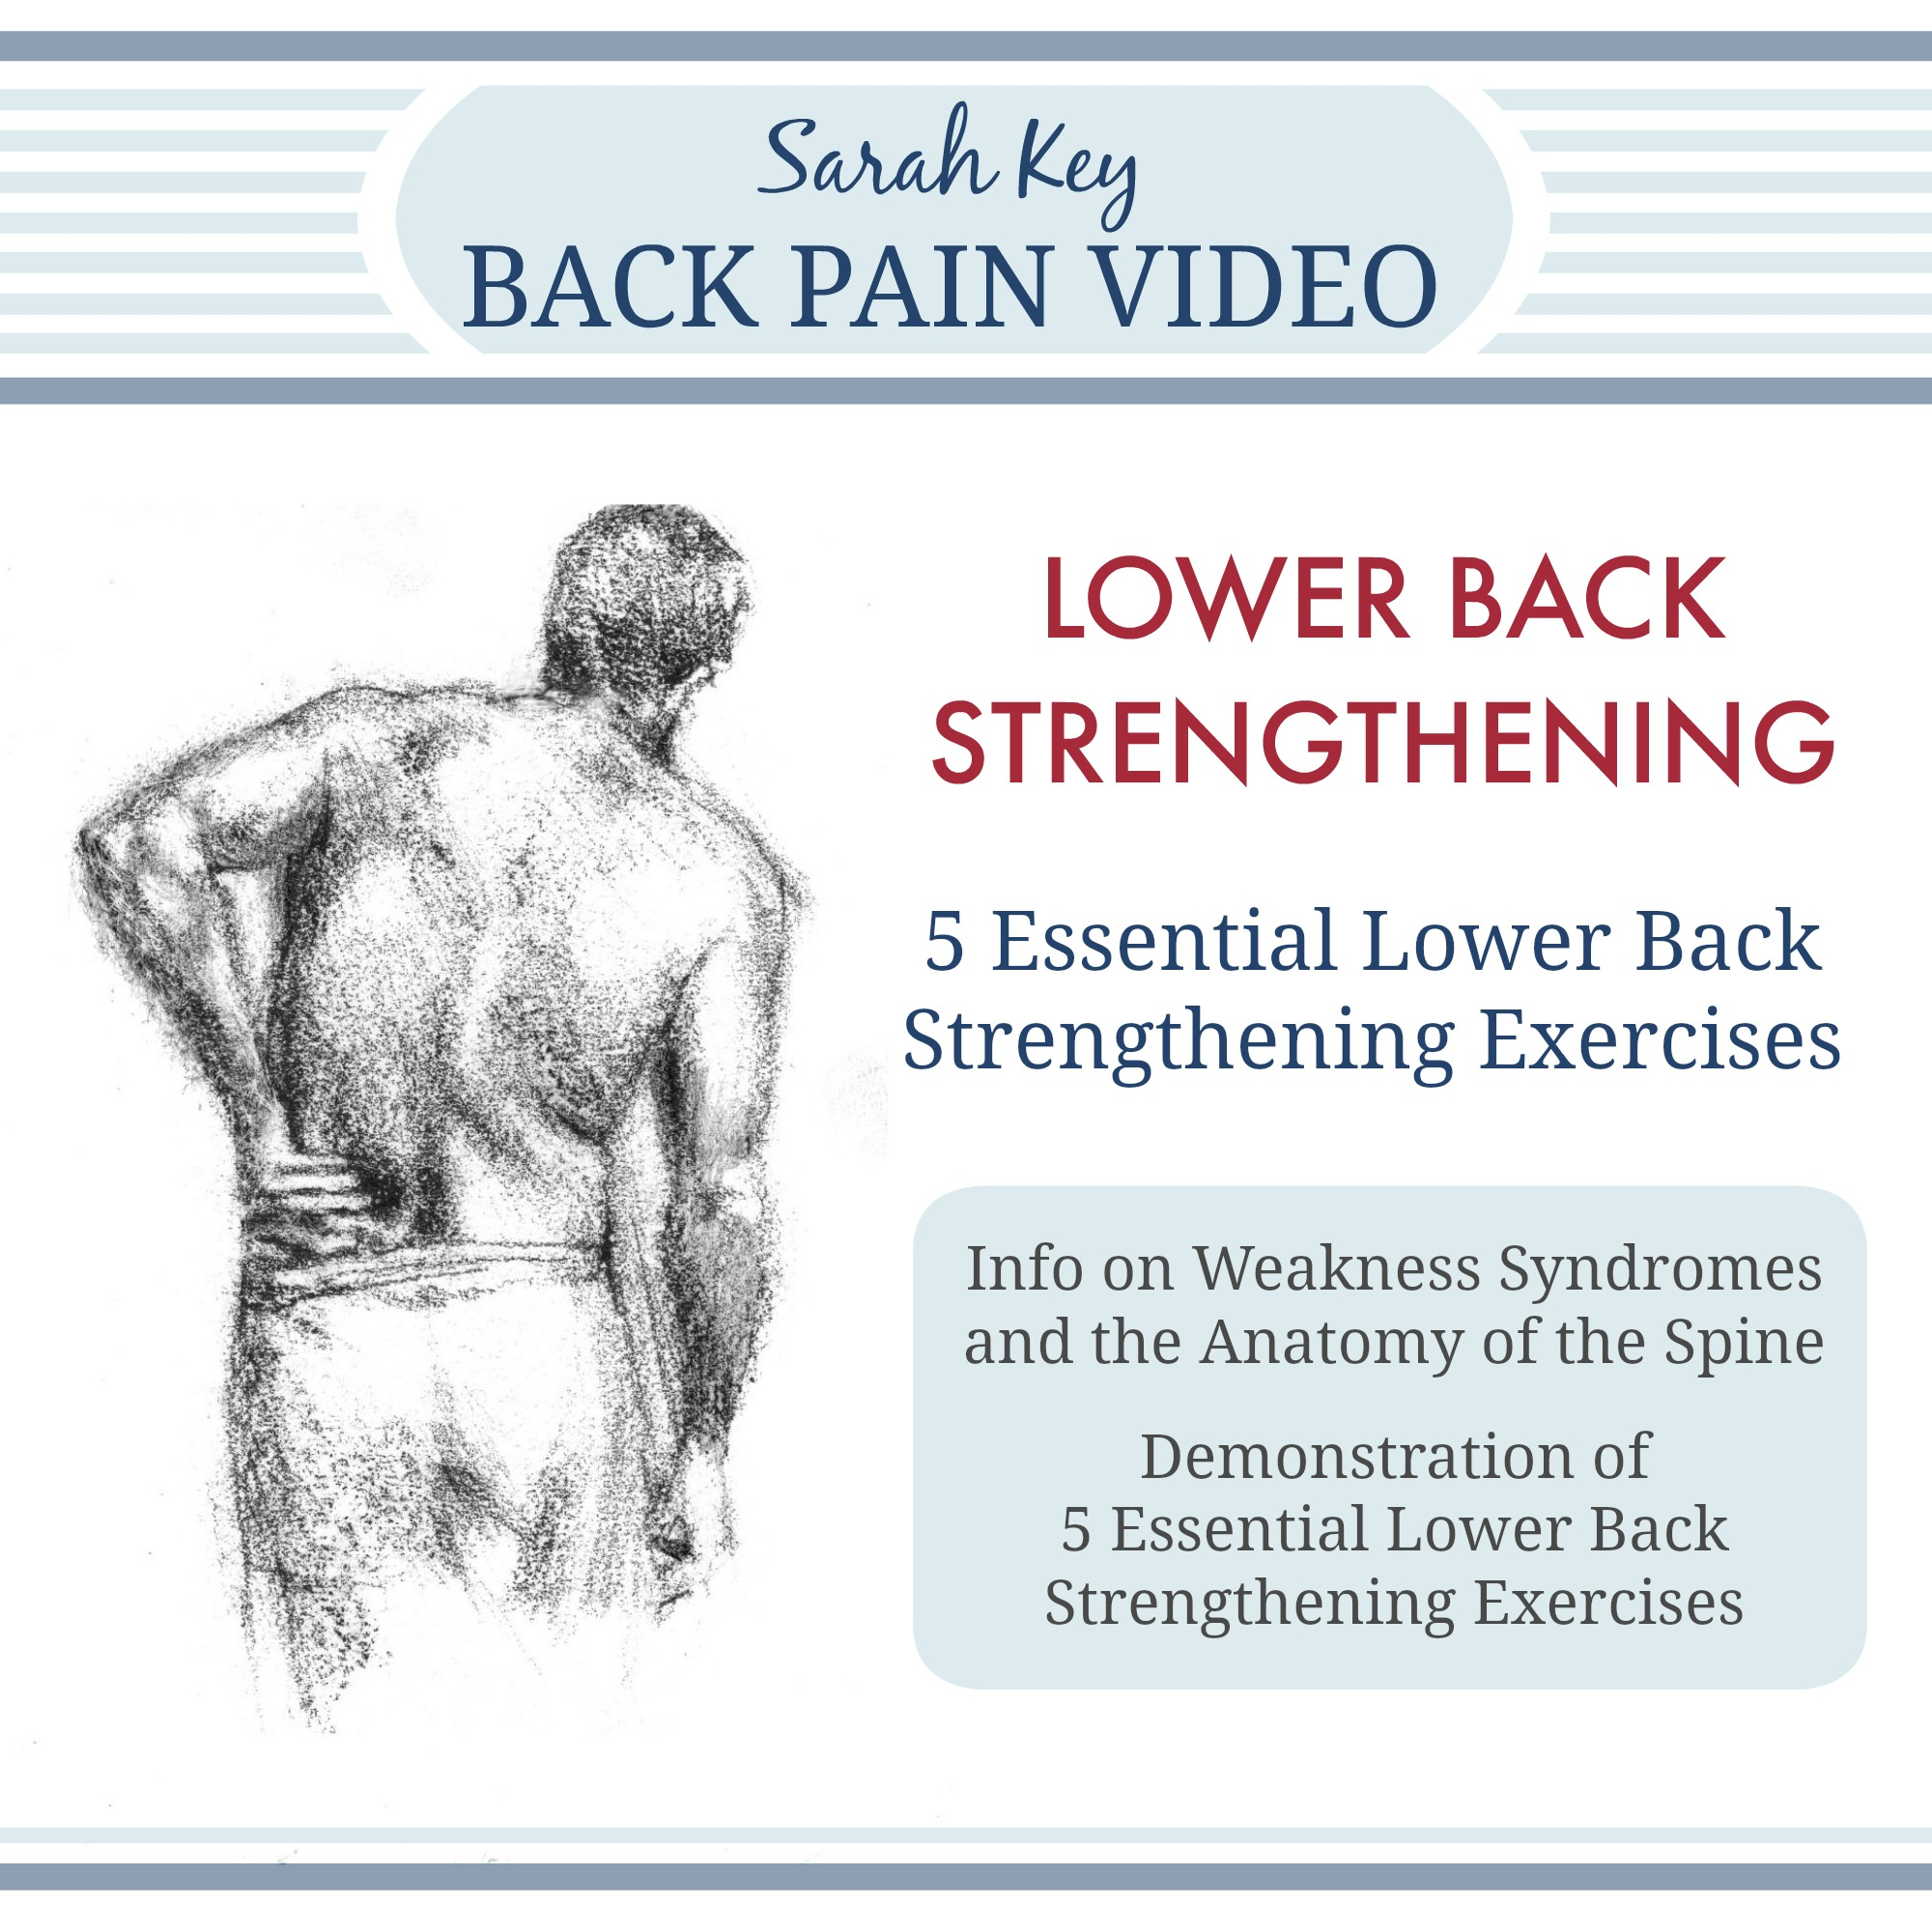 Here S One Of My Latest Graphic Workouts To Demonstrate: 5 Essential Lower Back Strengthening Exercises With Sarah Key